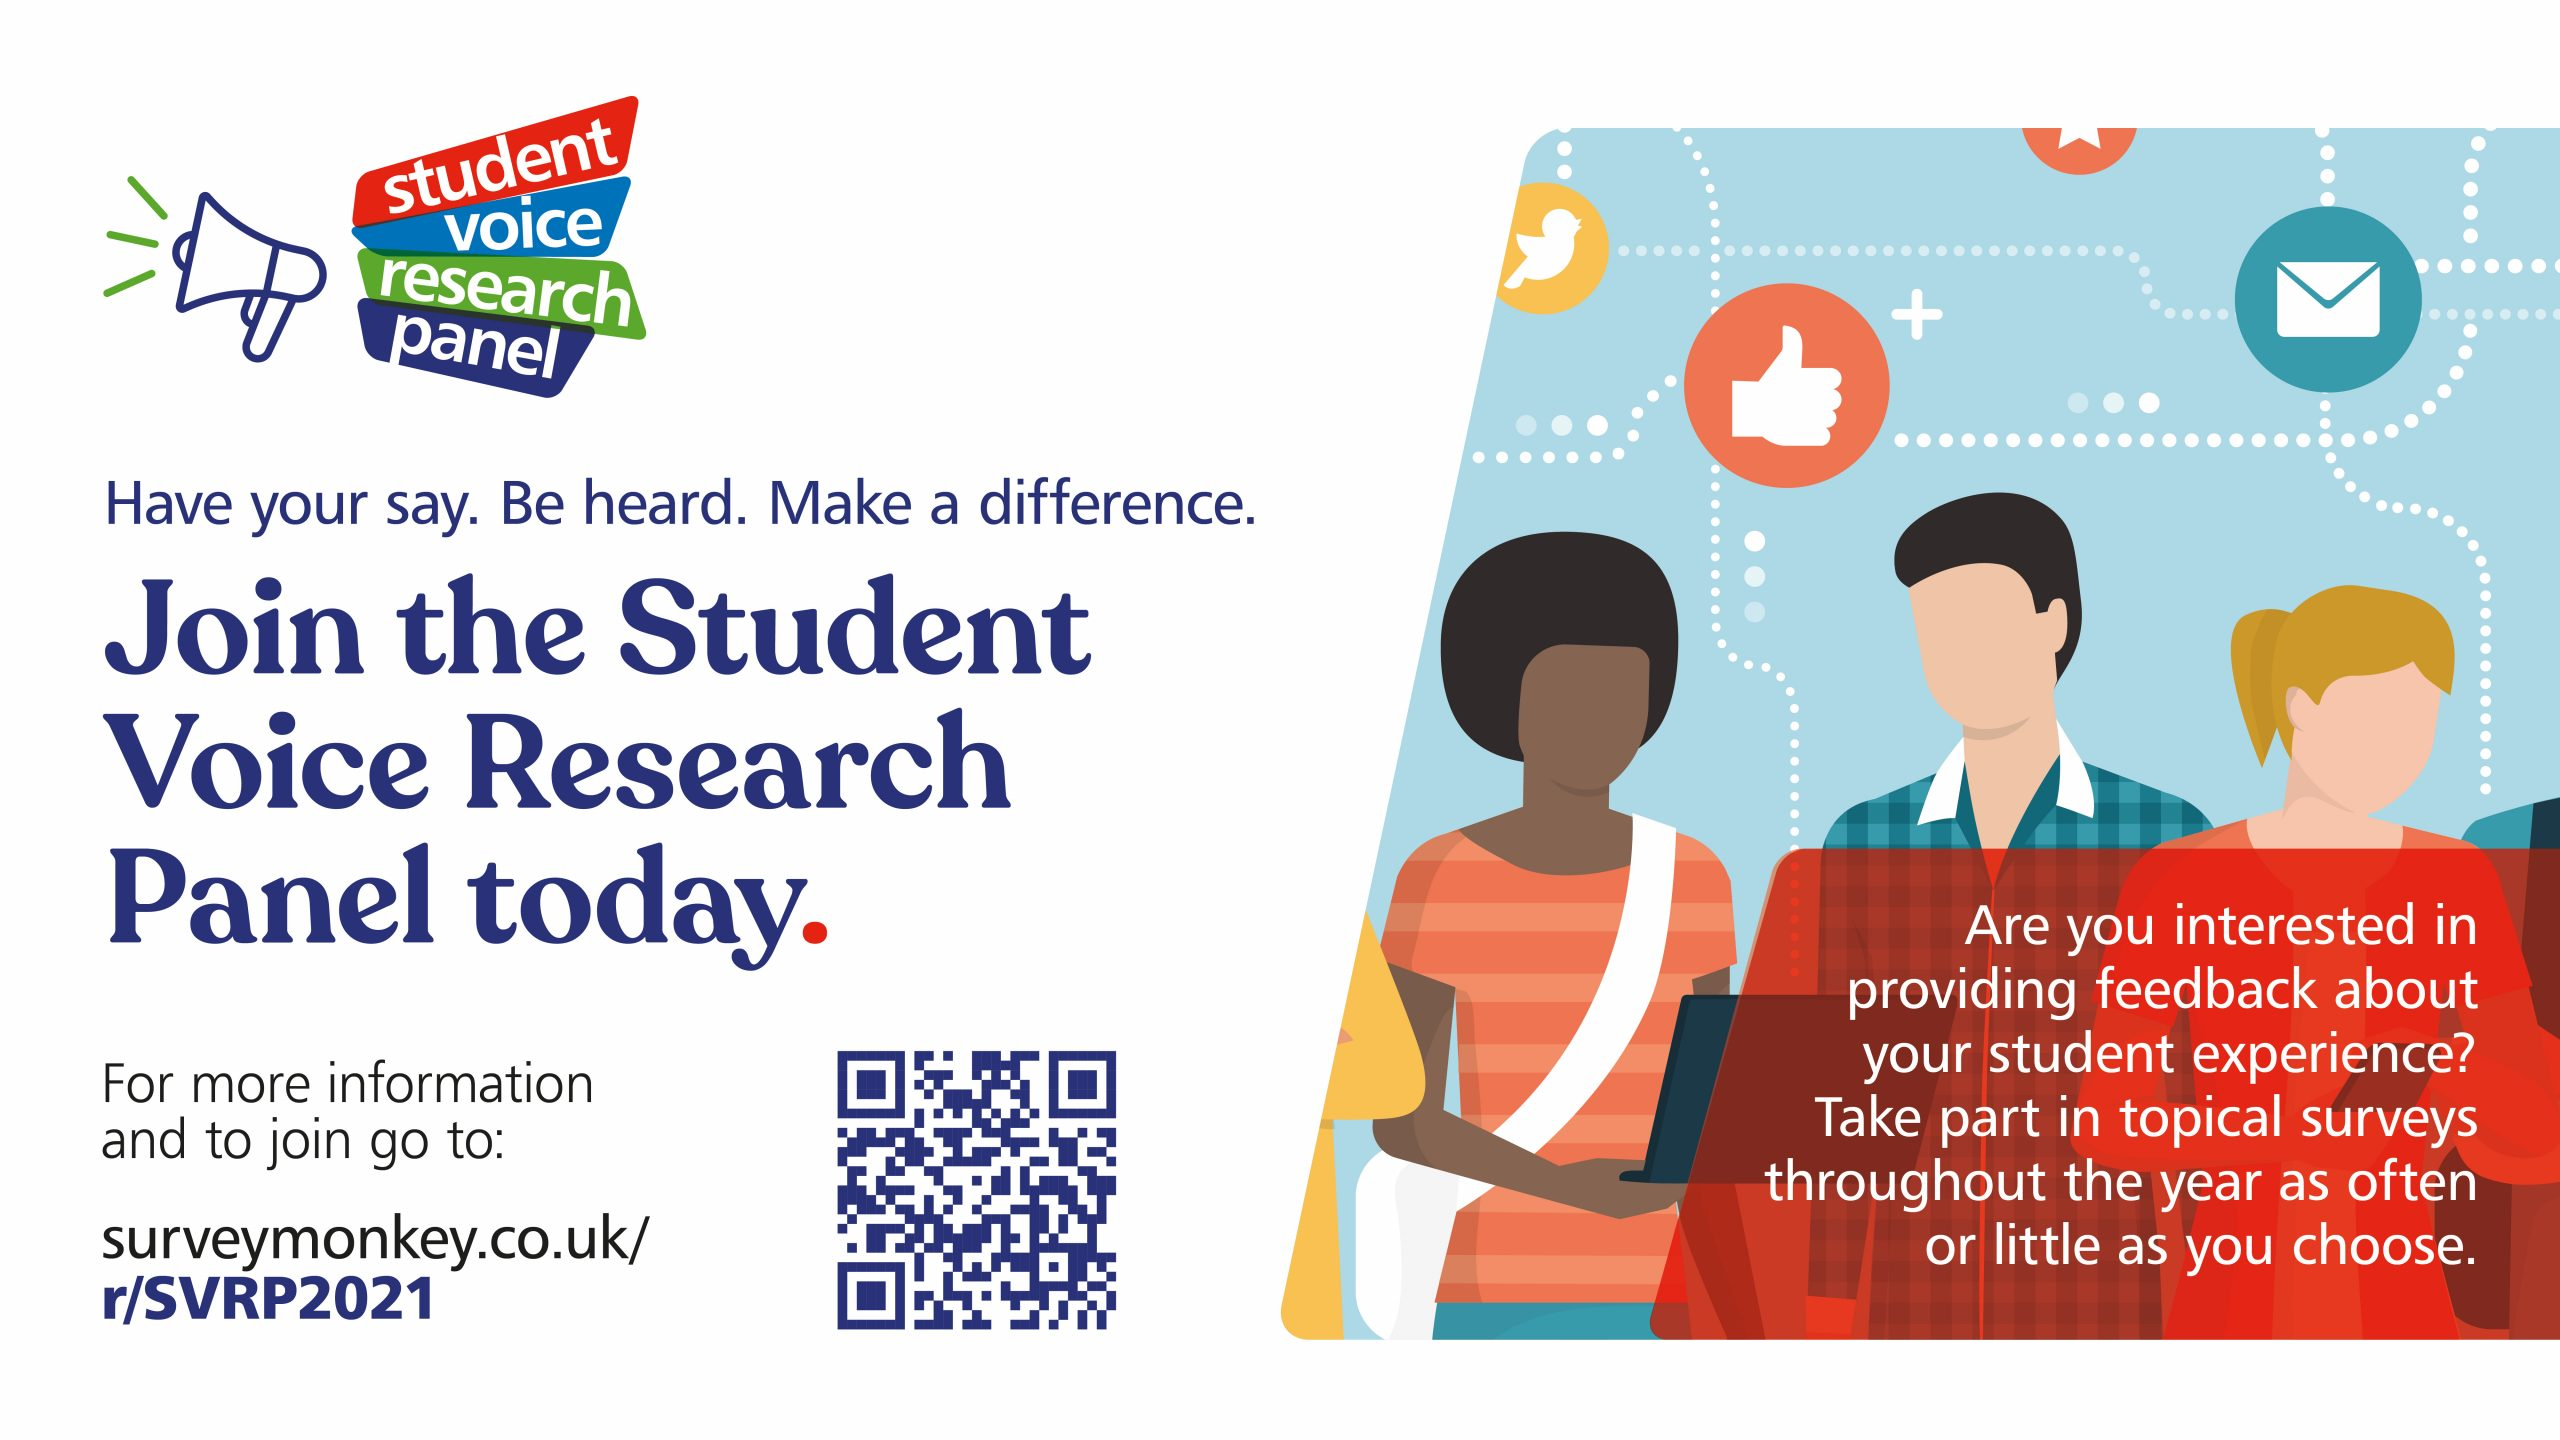 Join the first student voice research panel and make a difference